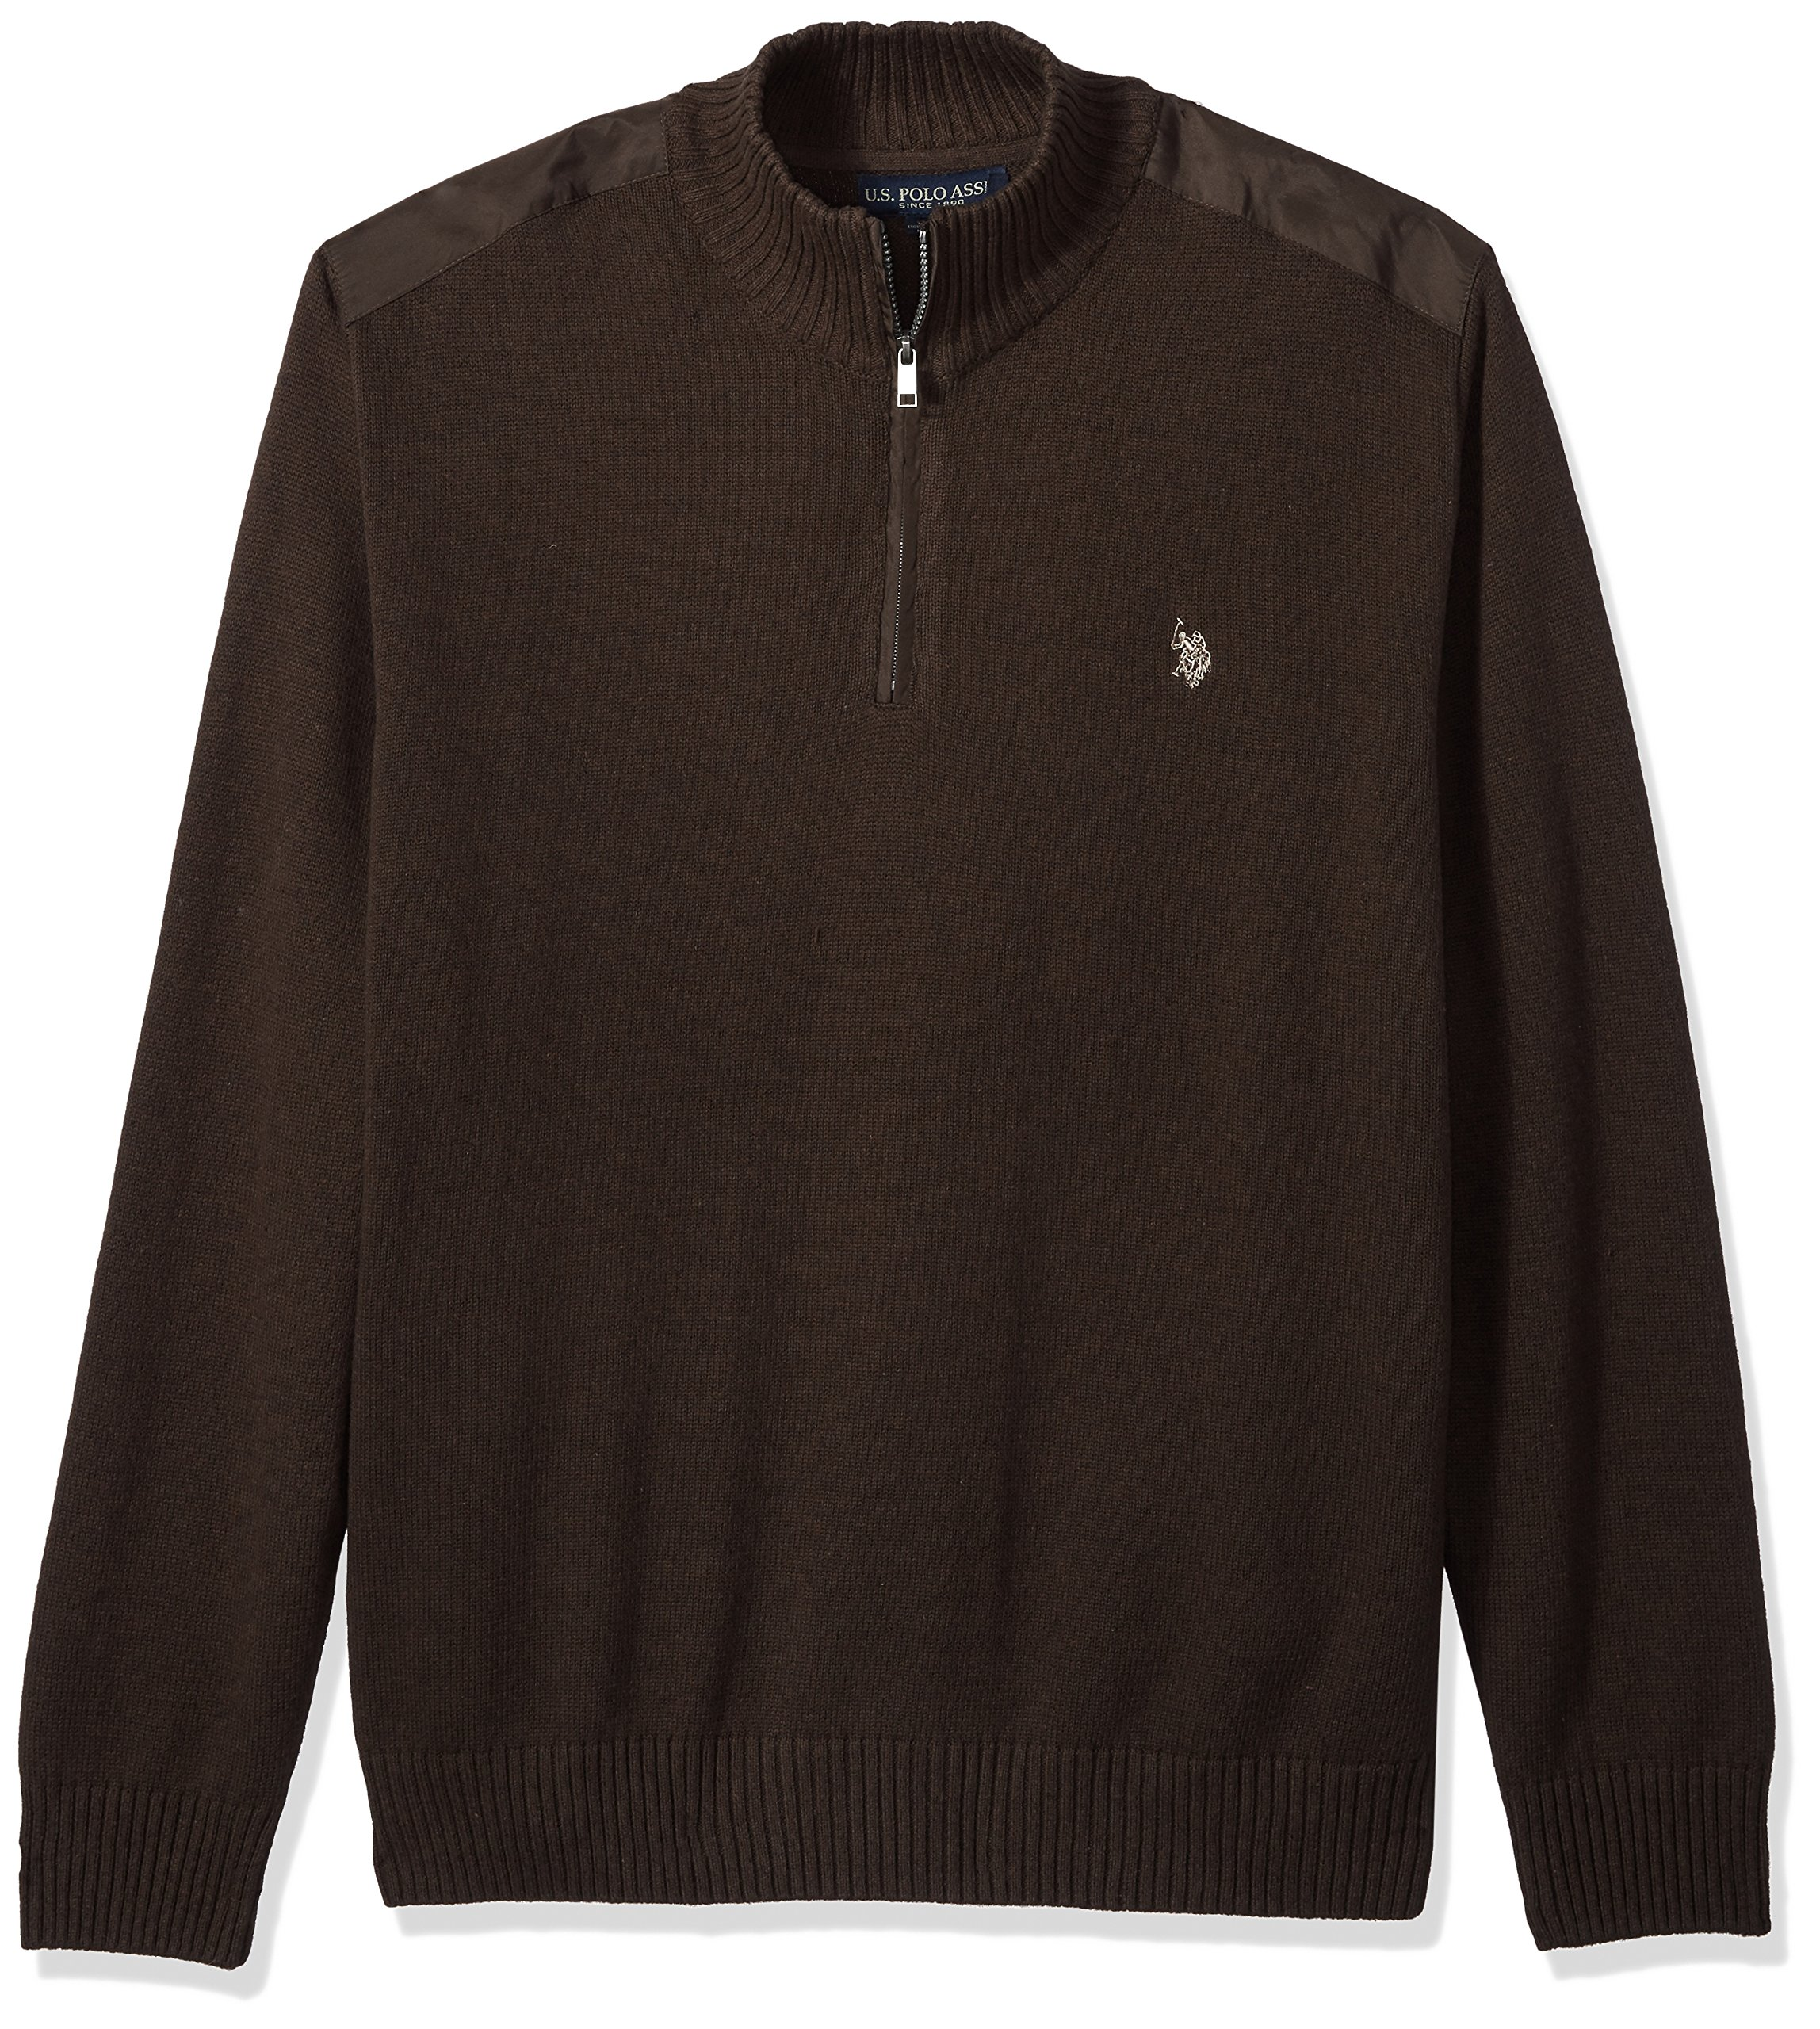 U.S. Polo Assn. Men's Quilted Shoulder 1/4 Neck Sweater, Mocha Heather, Large